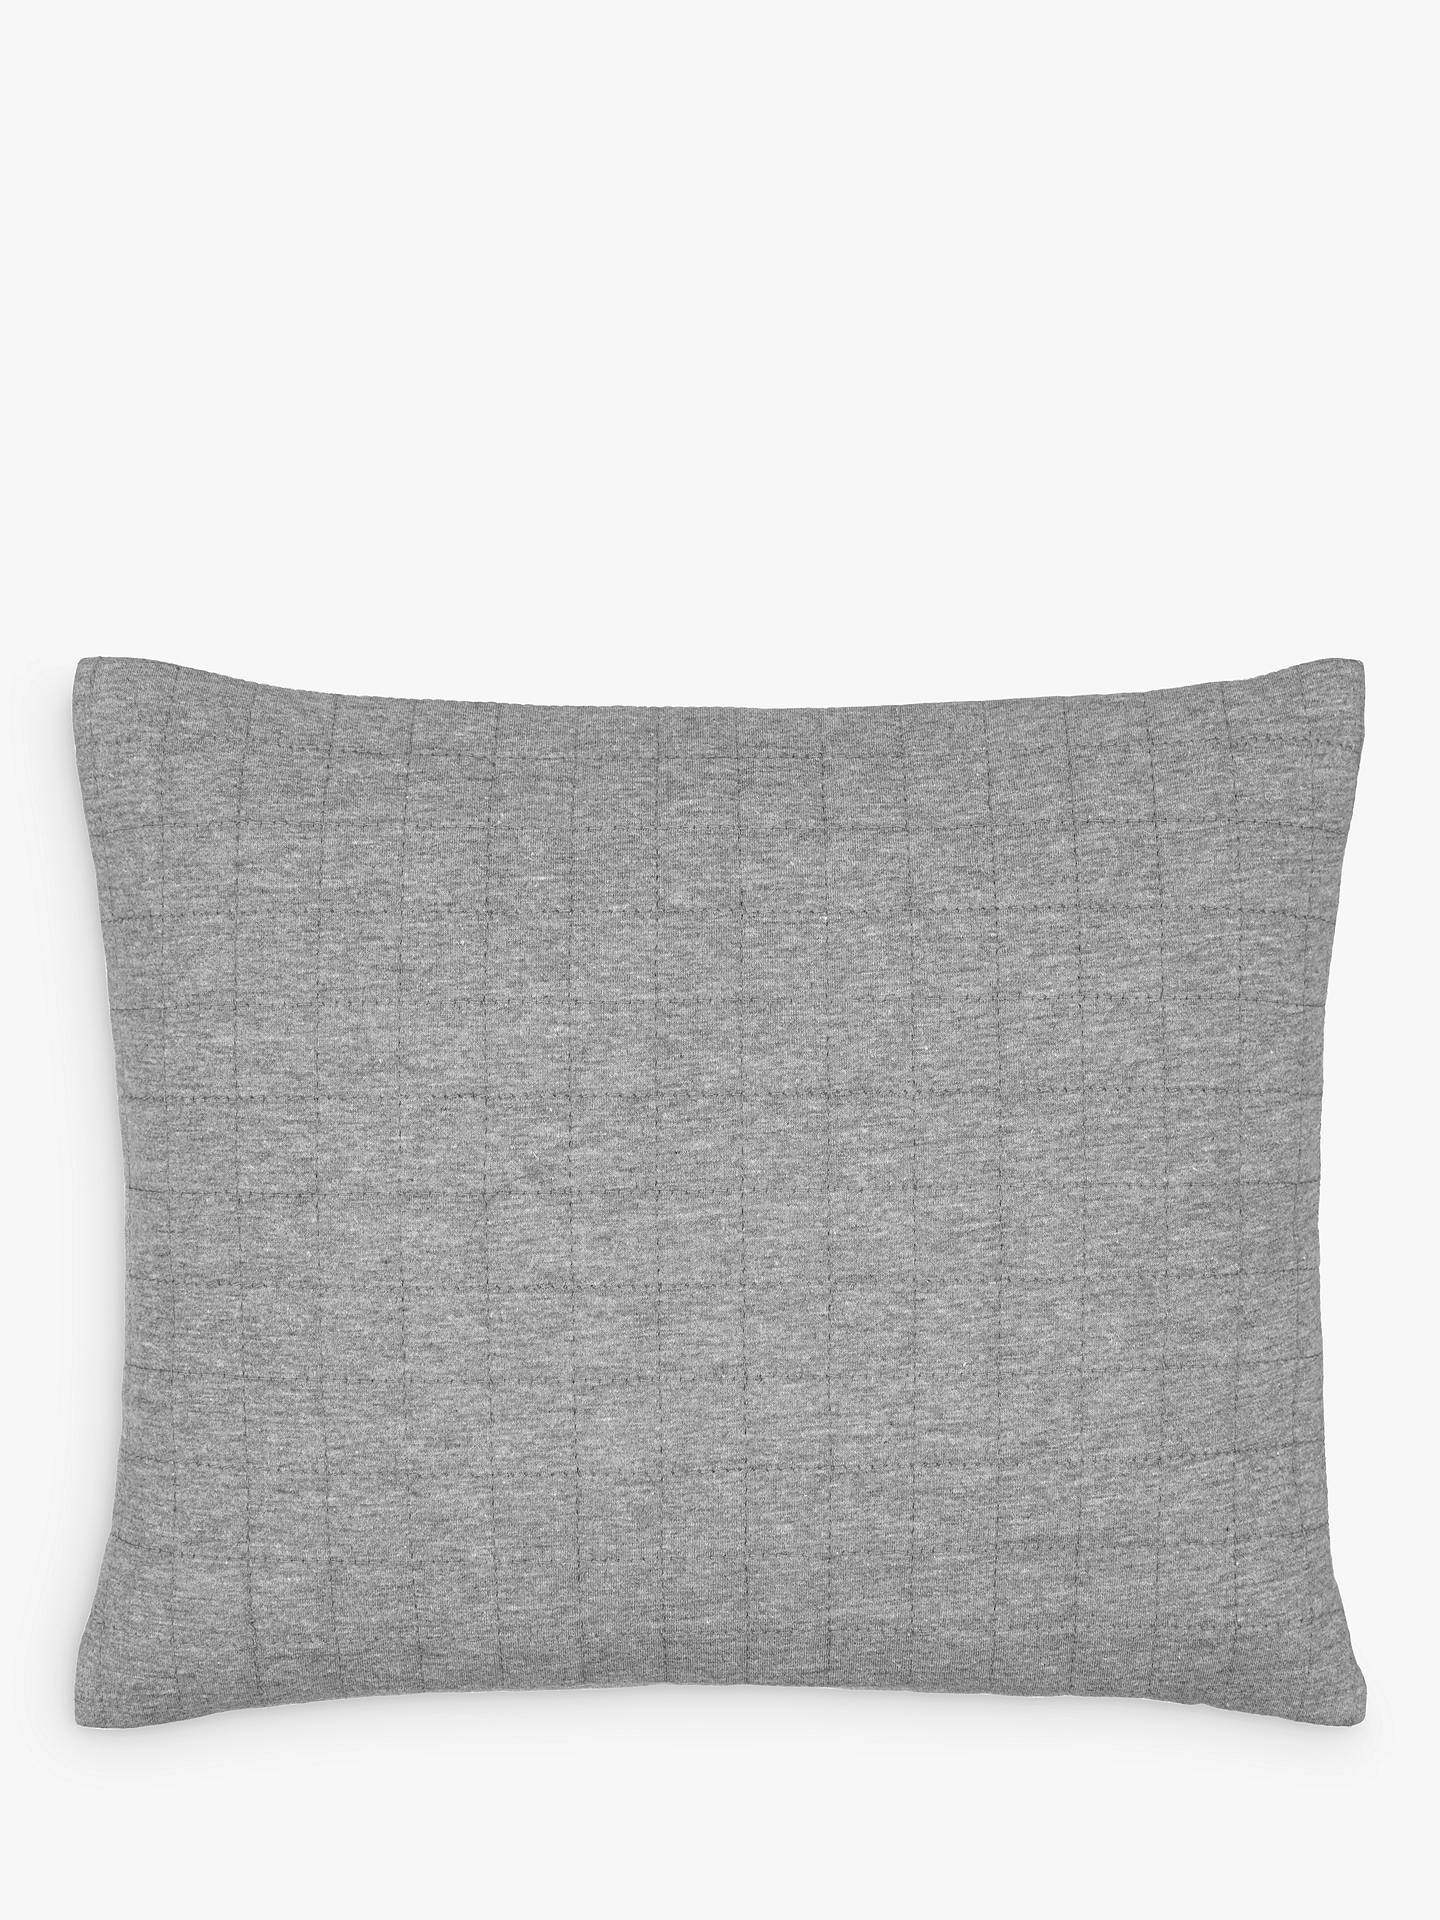 BuyHouse by John Lewis Jersey Cushion, Steel Online at johnlewis.com